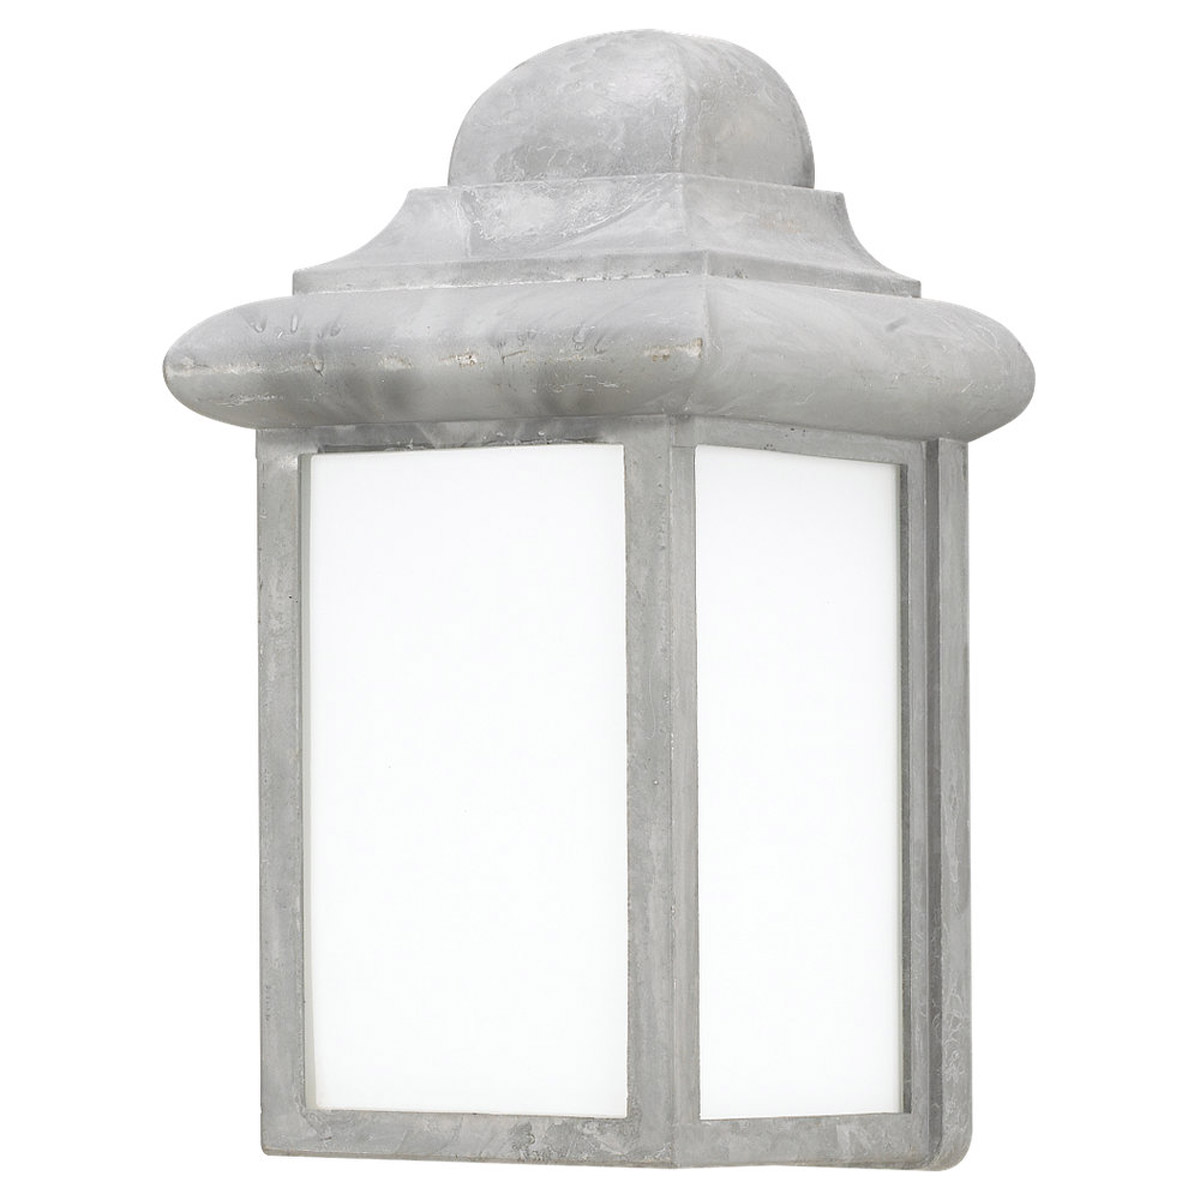 Sea Gull Lighting Mullberry Hill 1 Light Outdoor Wall Lantern in Pewter 8988PBLE-155